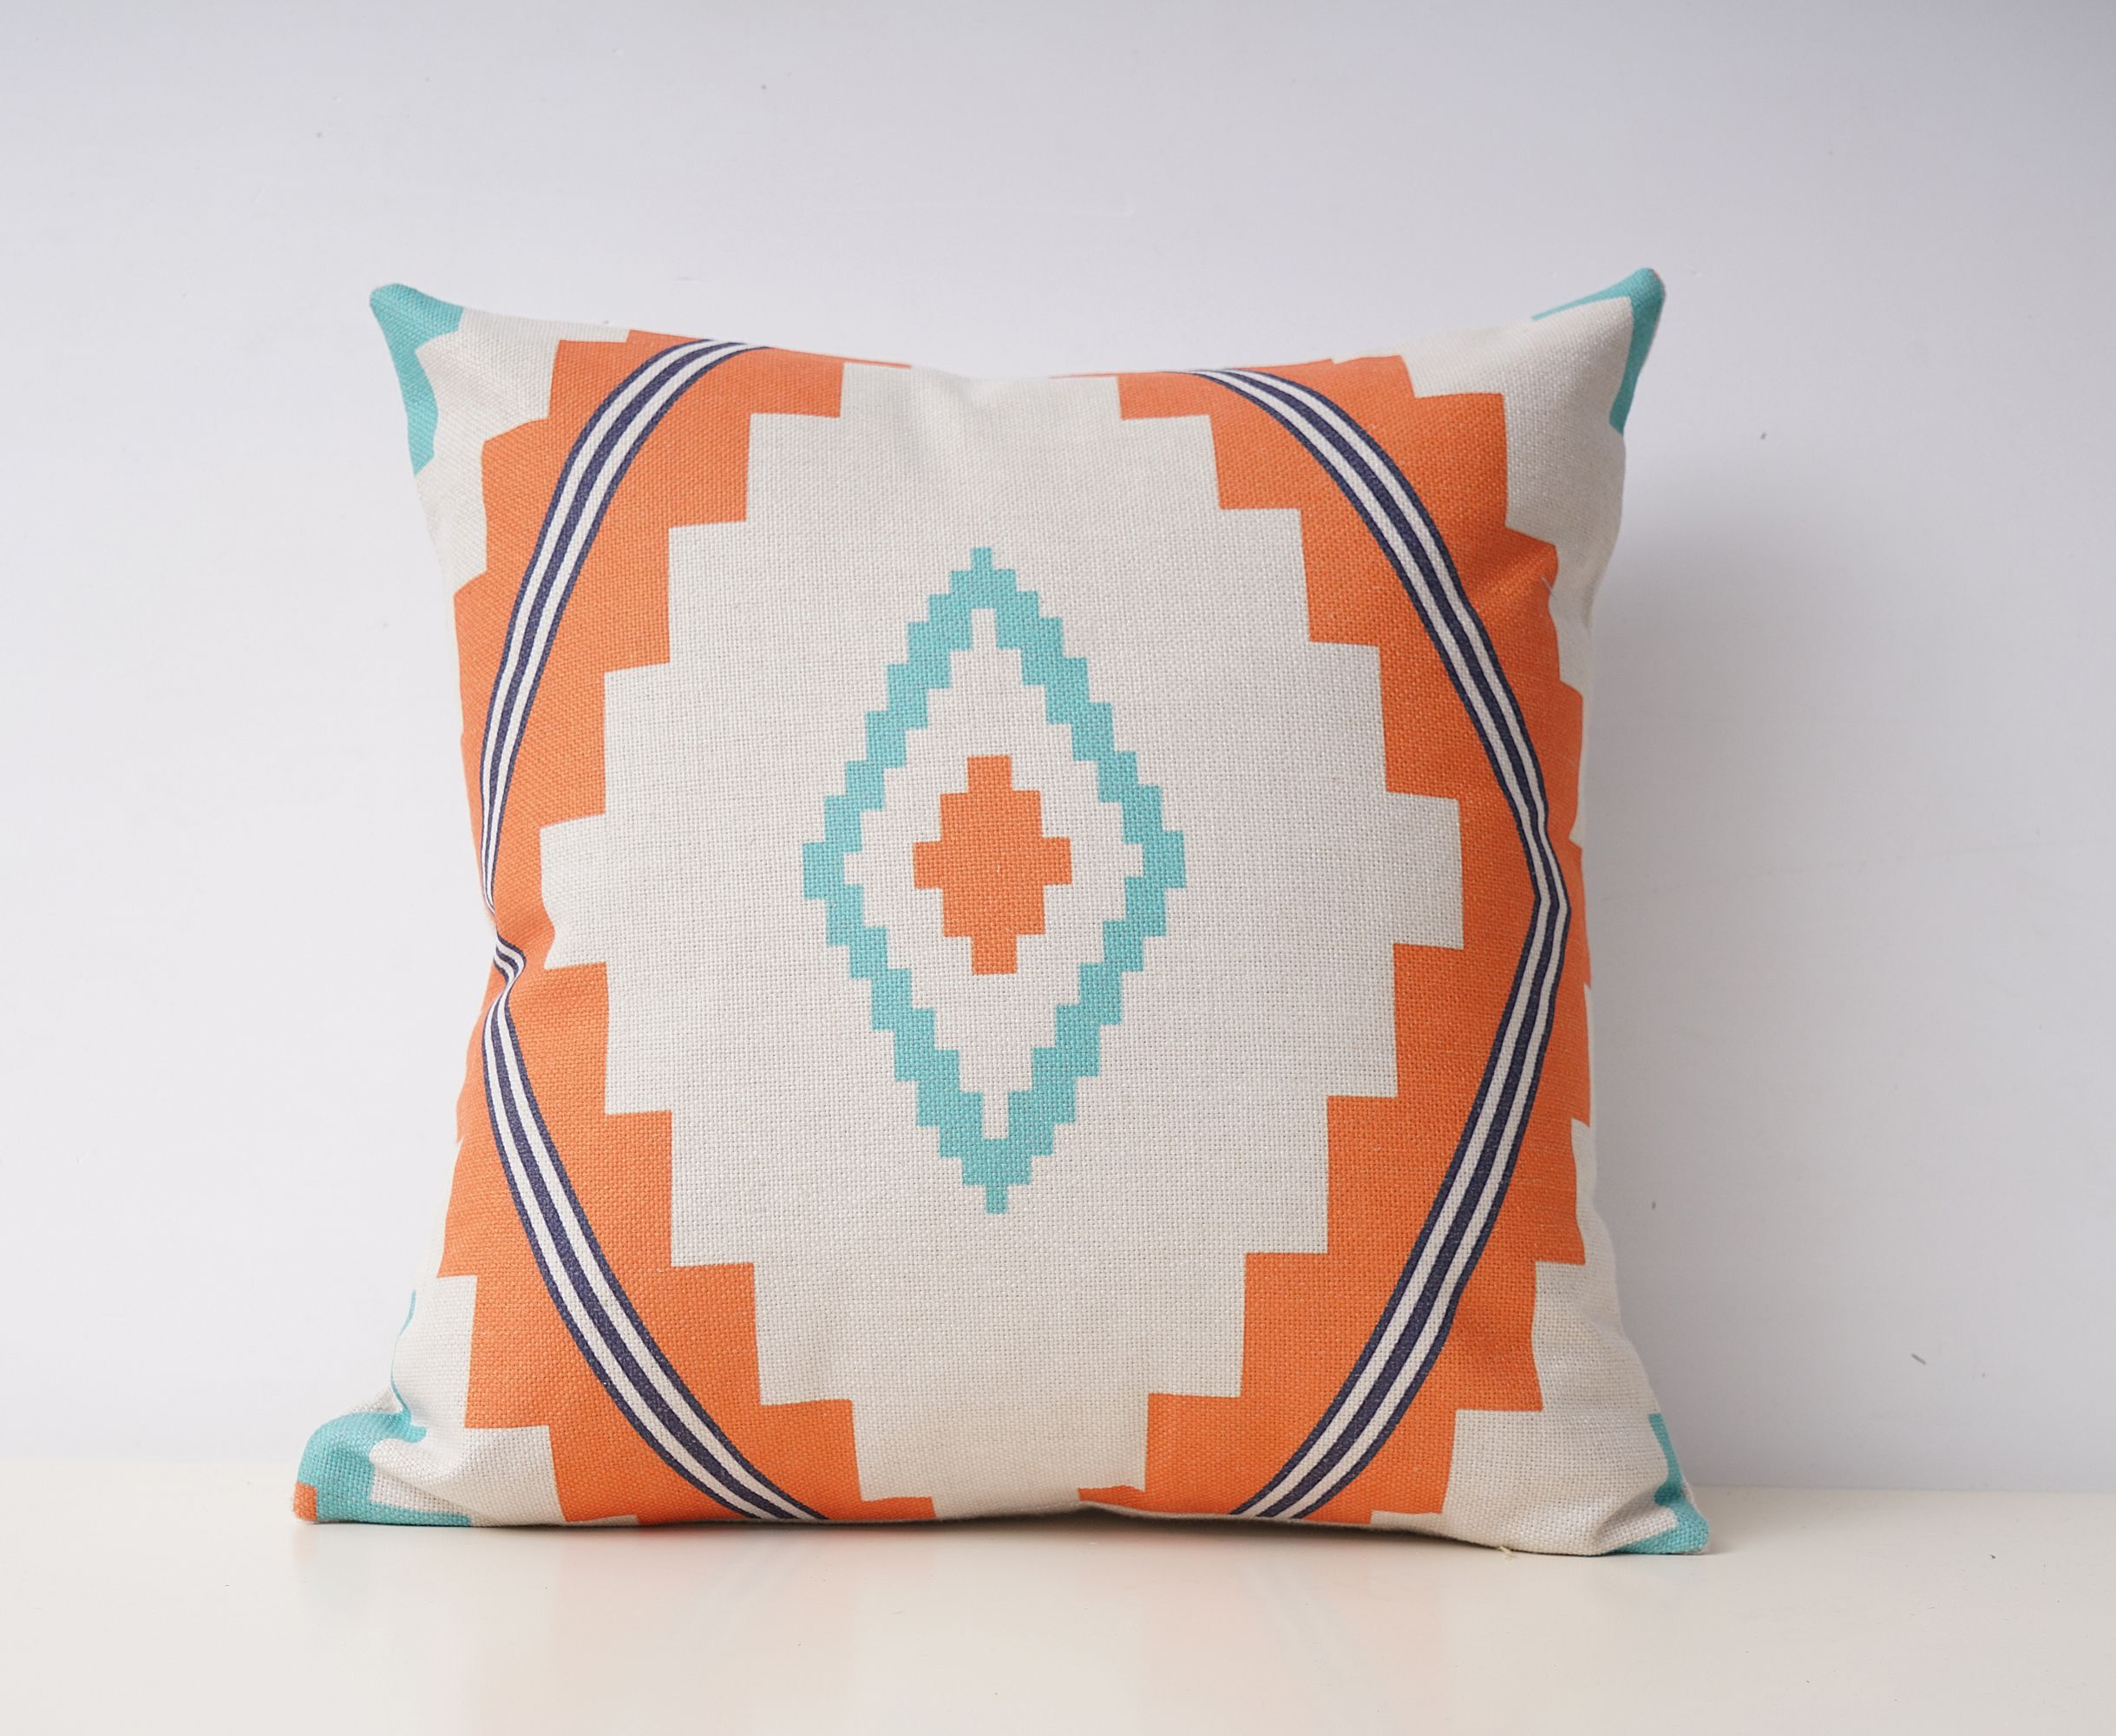 Pin by Swan on aztec throw pillow covers Pinterest Aztec